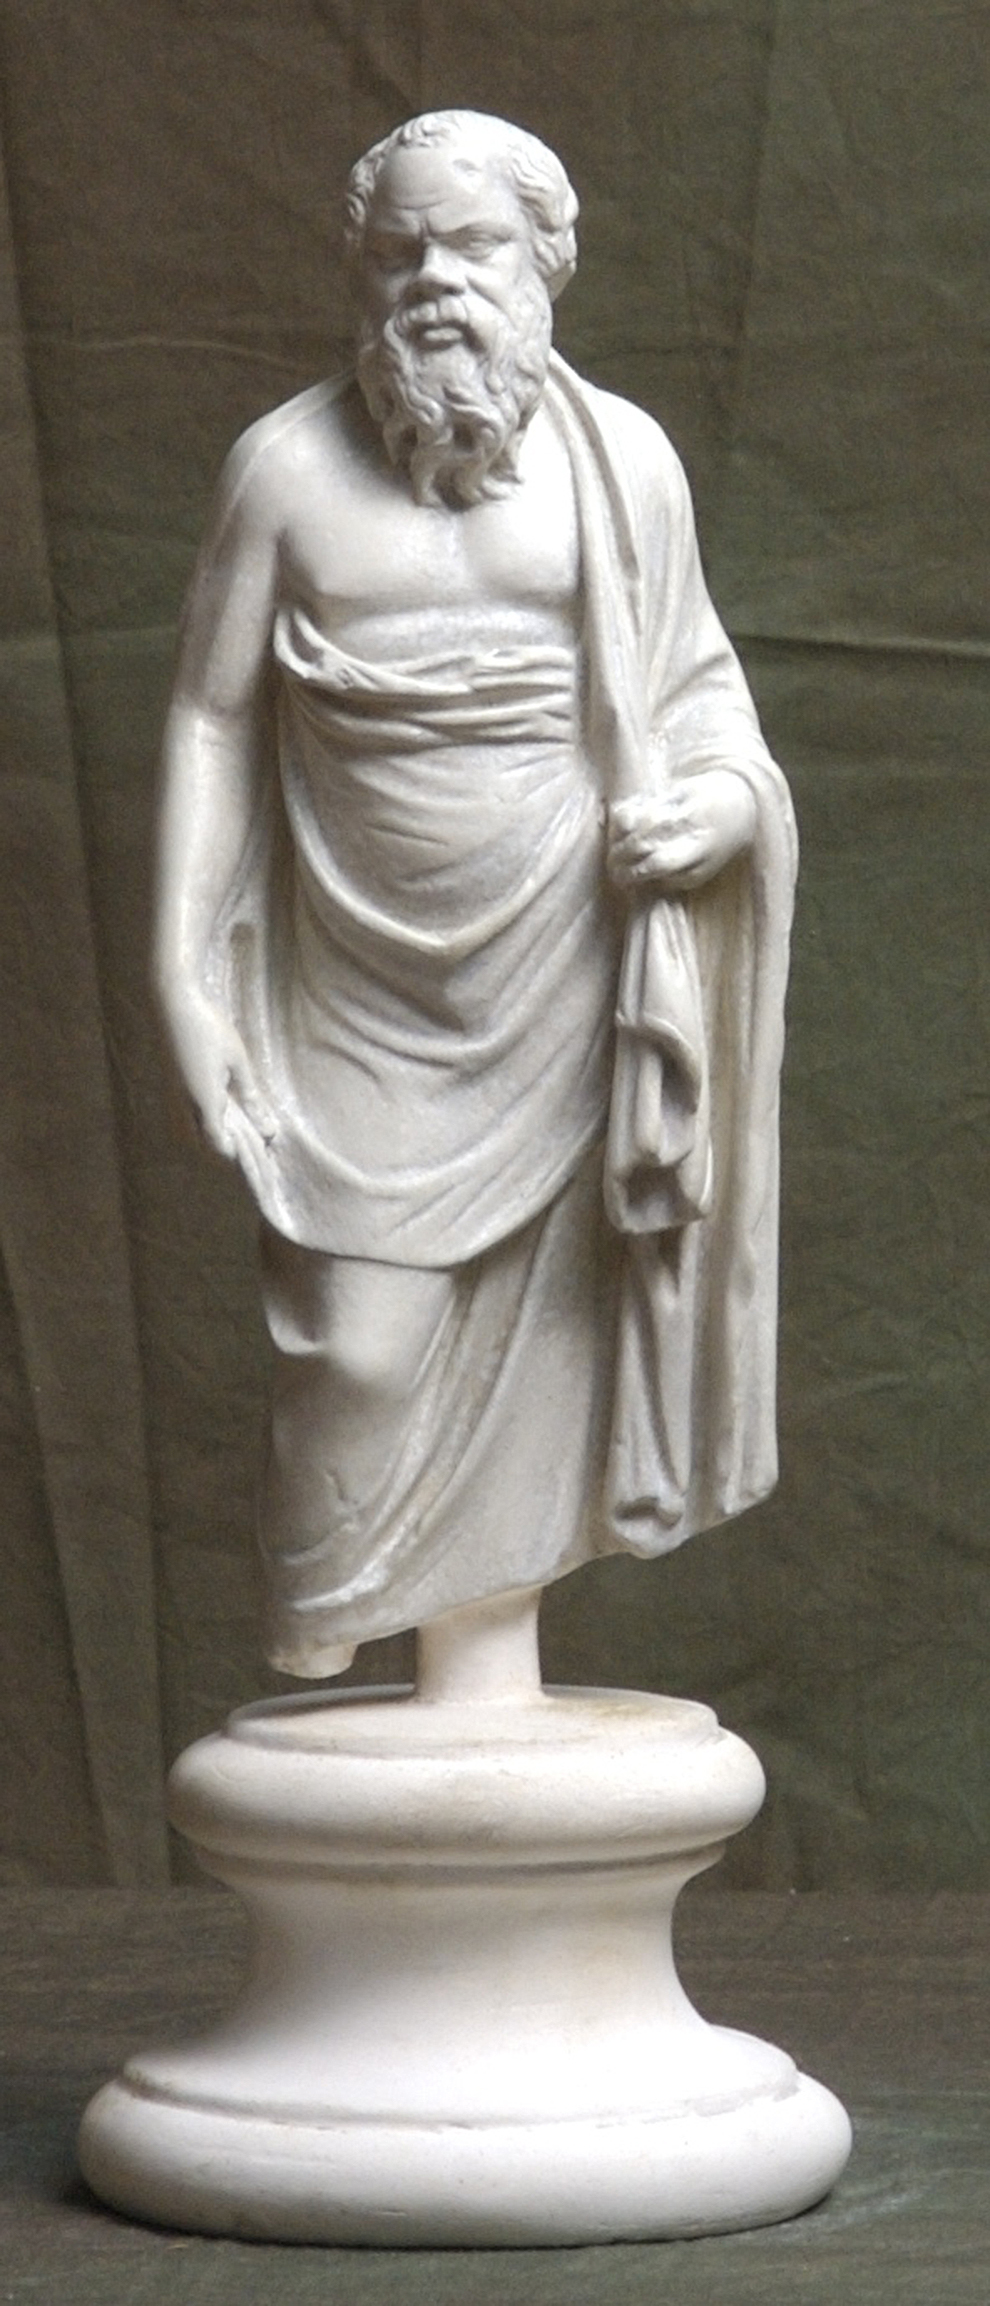 Socrates. University of Cambridge Museum of Classical Archaeology, Purchased from the British Museum in 1928.